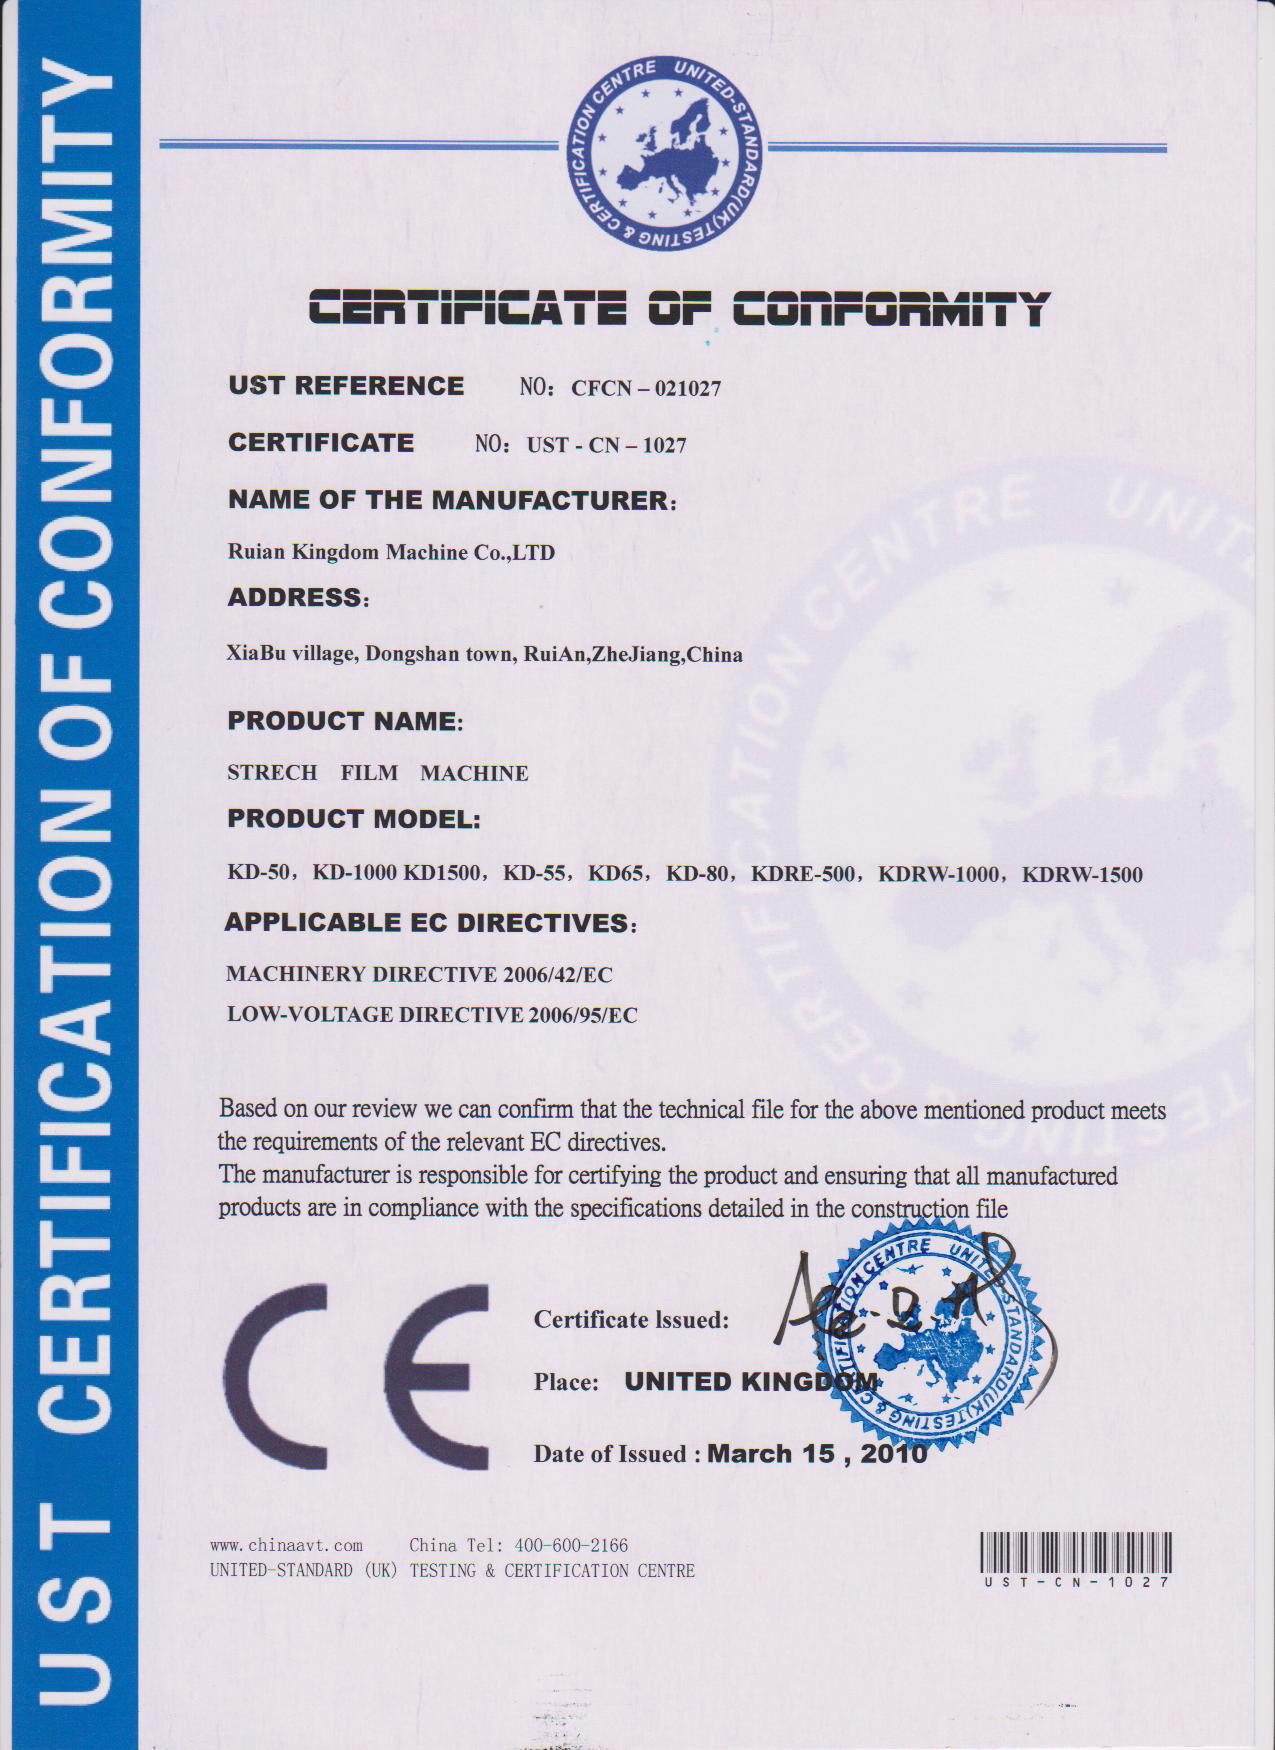 CE certificate for stretch film machine-Kingdom Machine